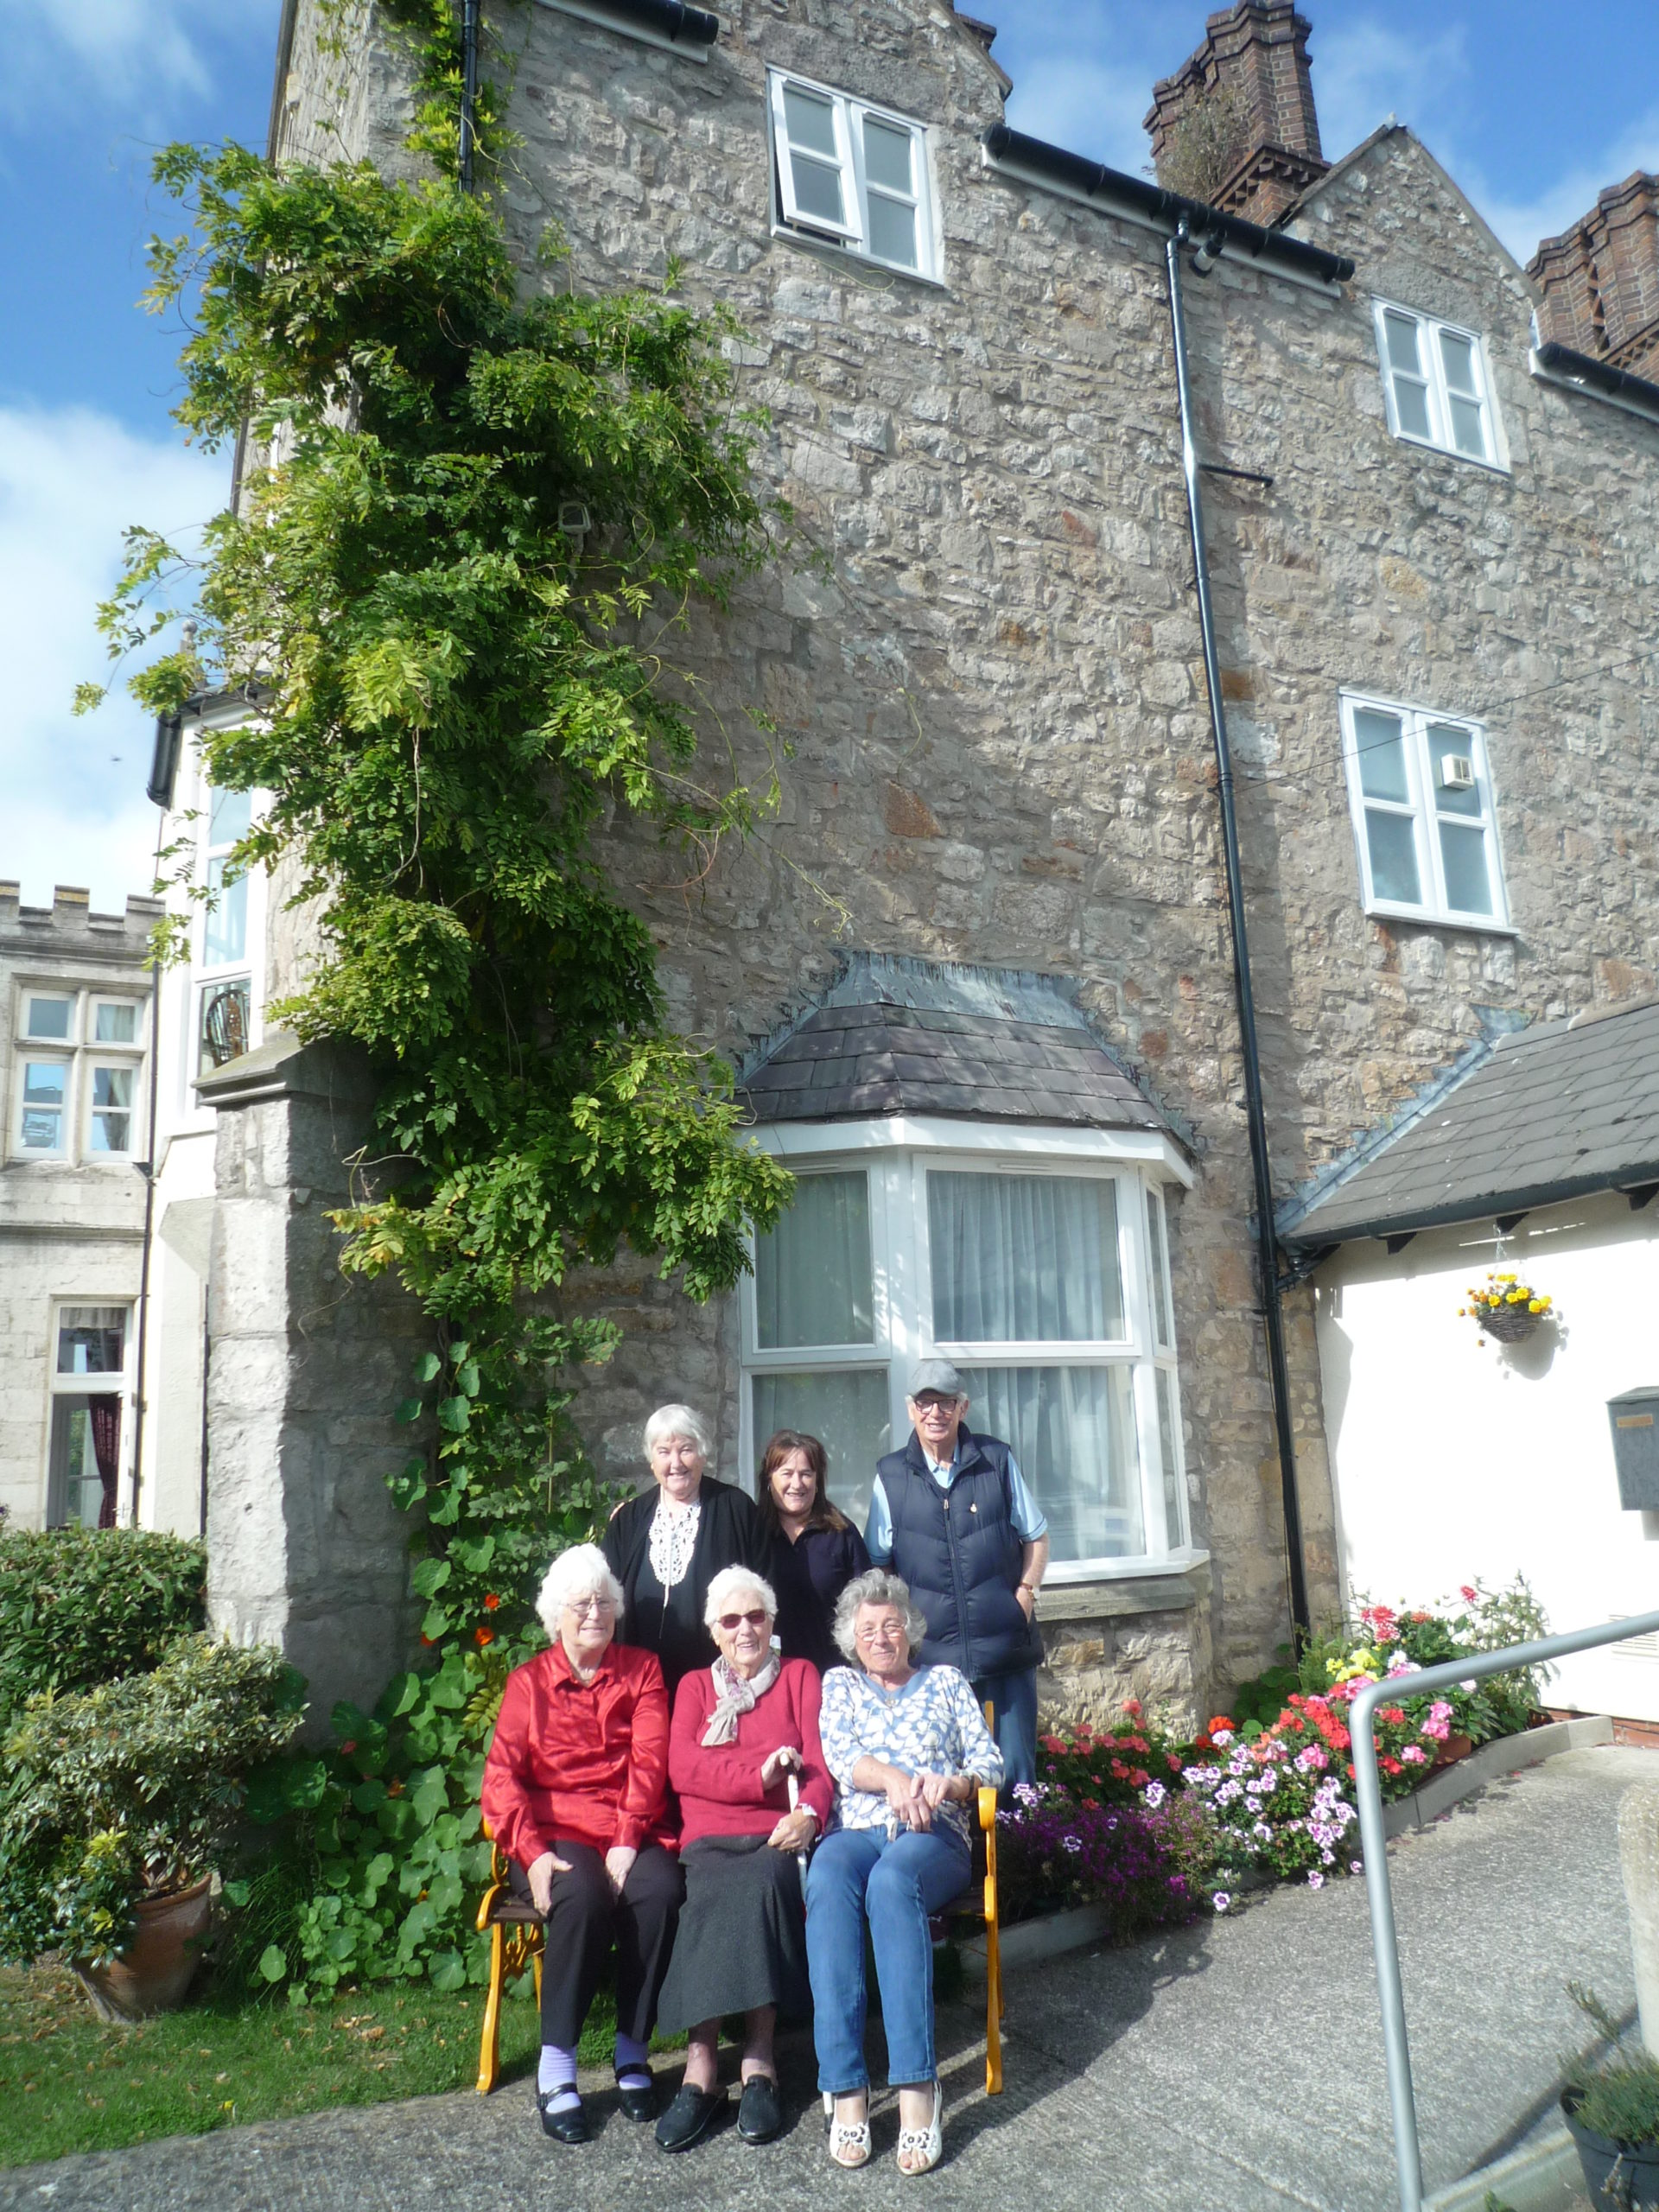 Highly commended: Louise Blackwell – residents outside Pentre Mawr, Conwy